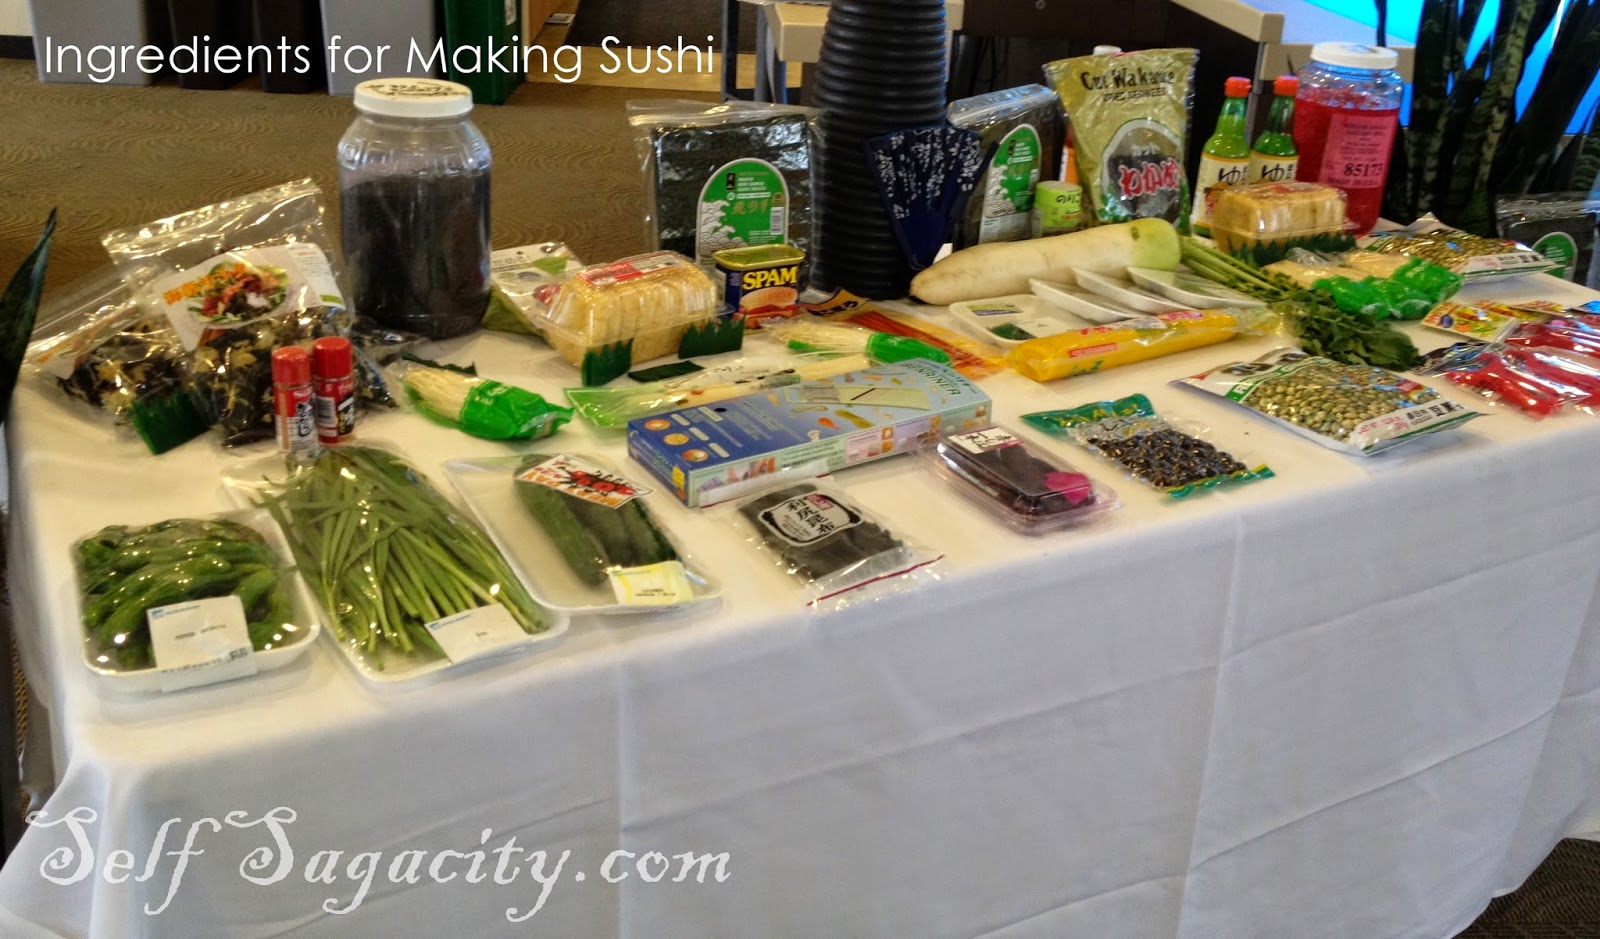 table-with-sushi-making-tools-ingredients